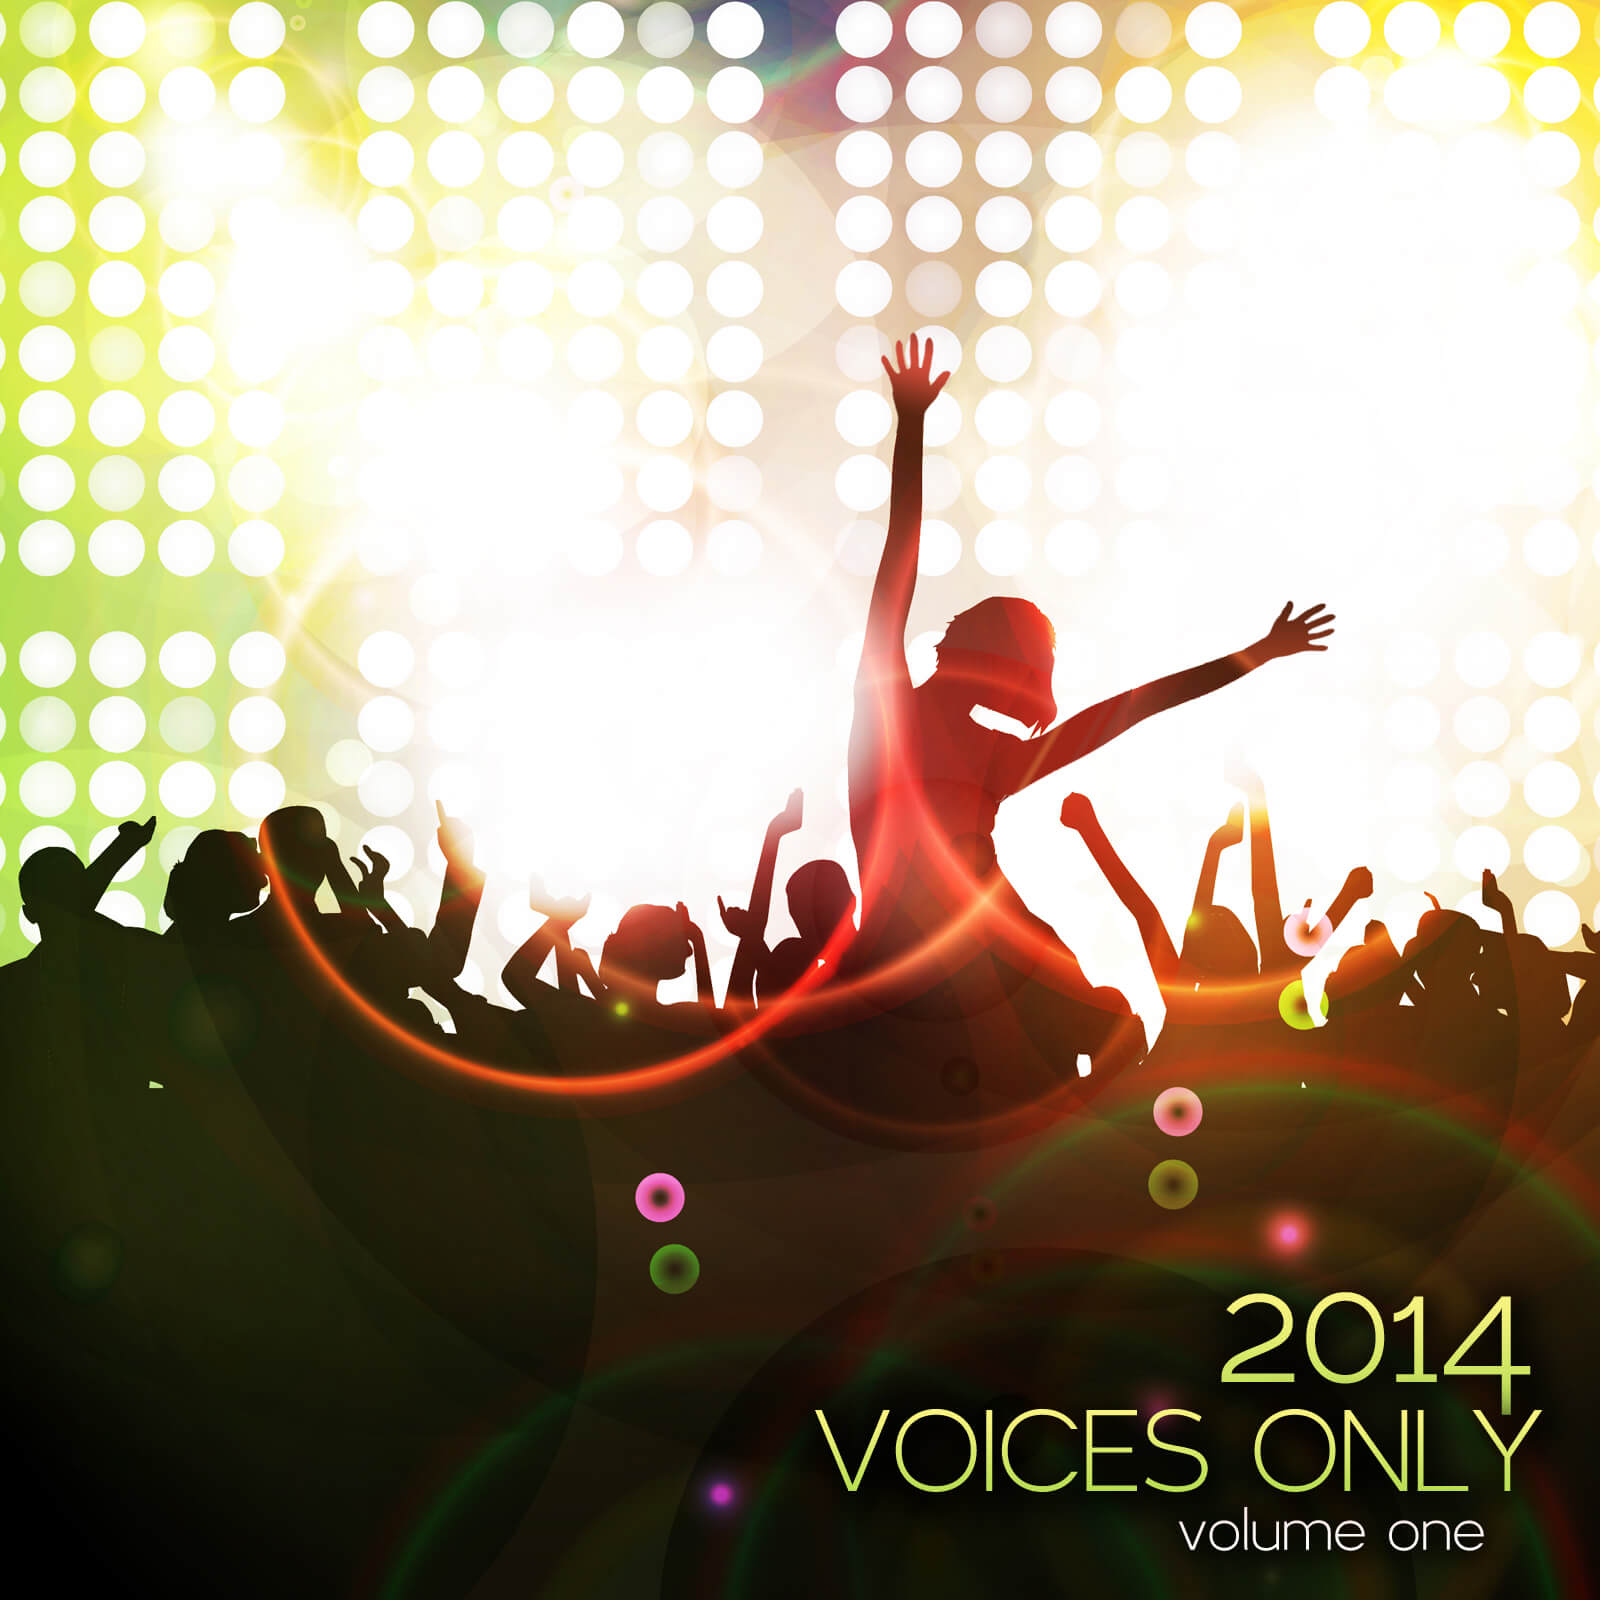 Voices Only 2011 - The best collegiate a cappella tracks on 2 CDs